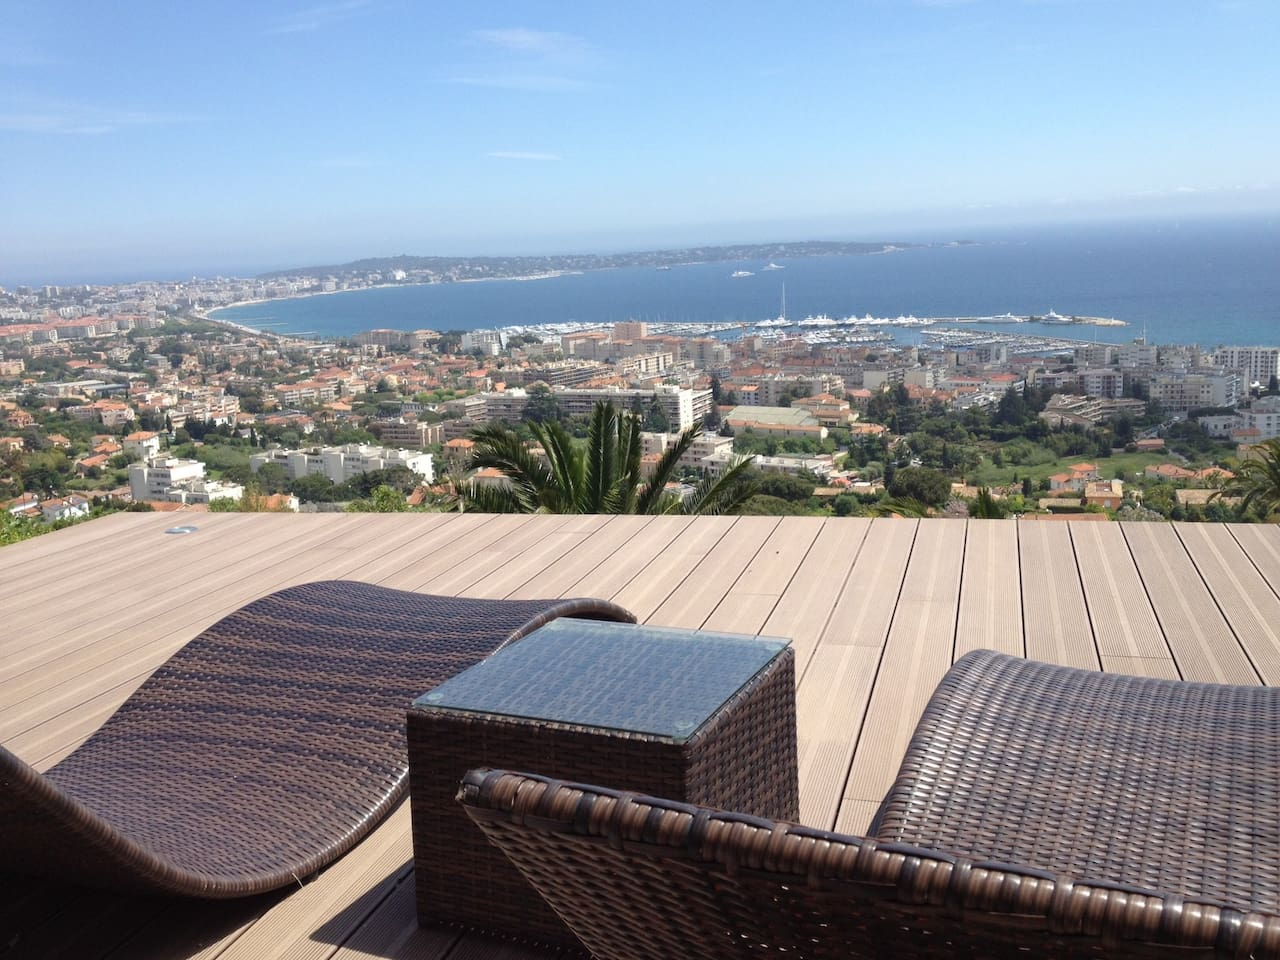 Superbe vue sur la baie de Golfe Juan - Marvelous view of the bay of Golfe Juan